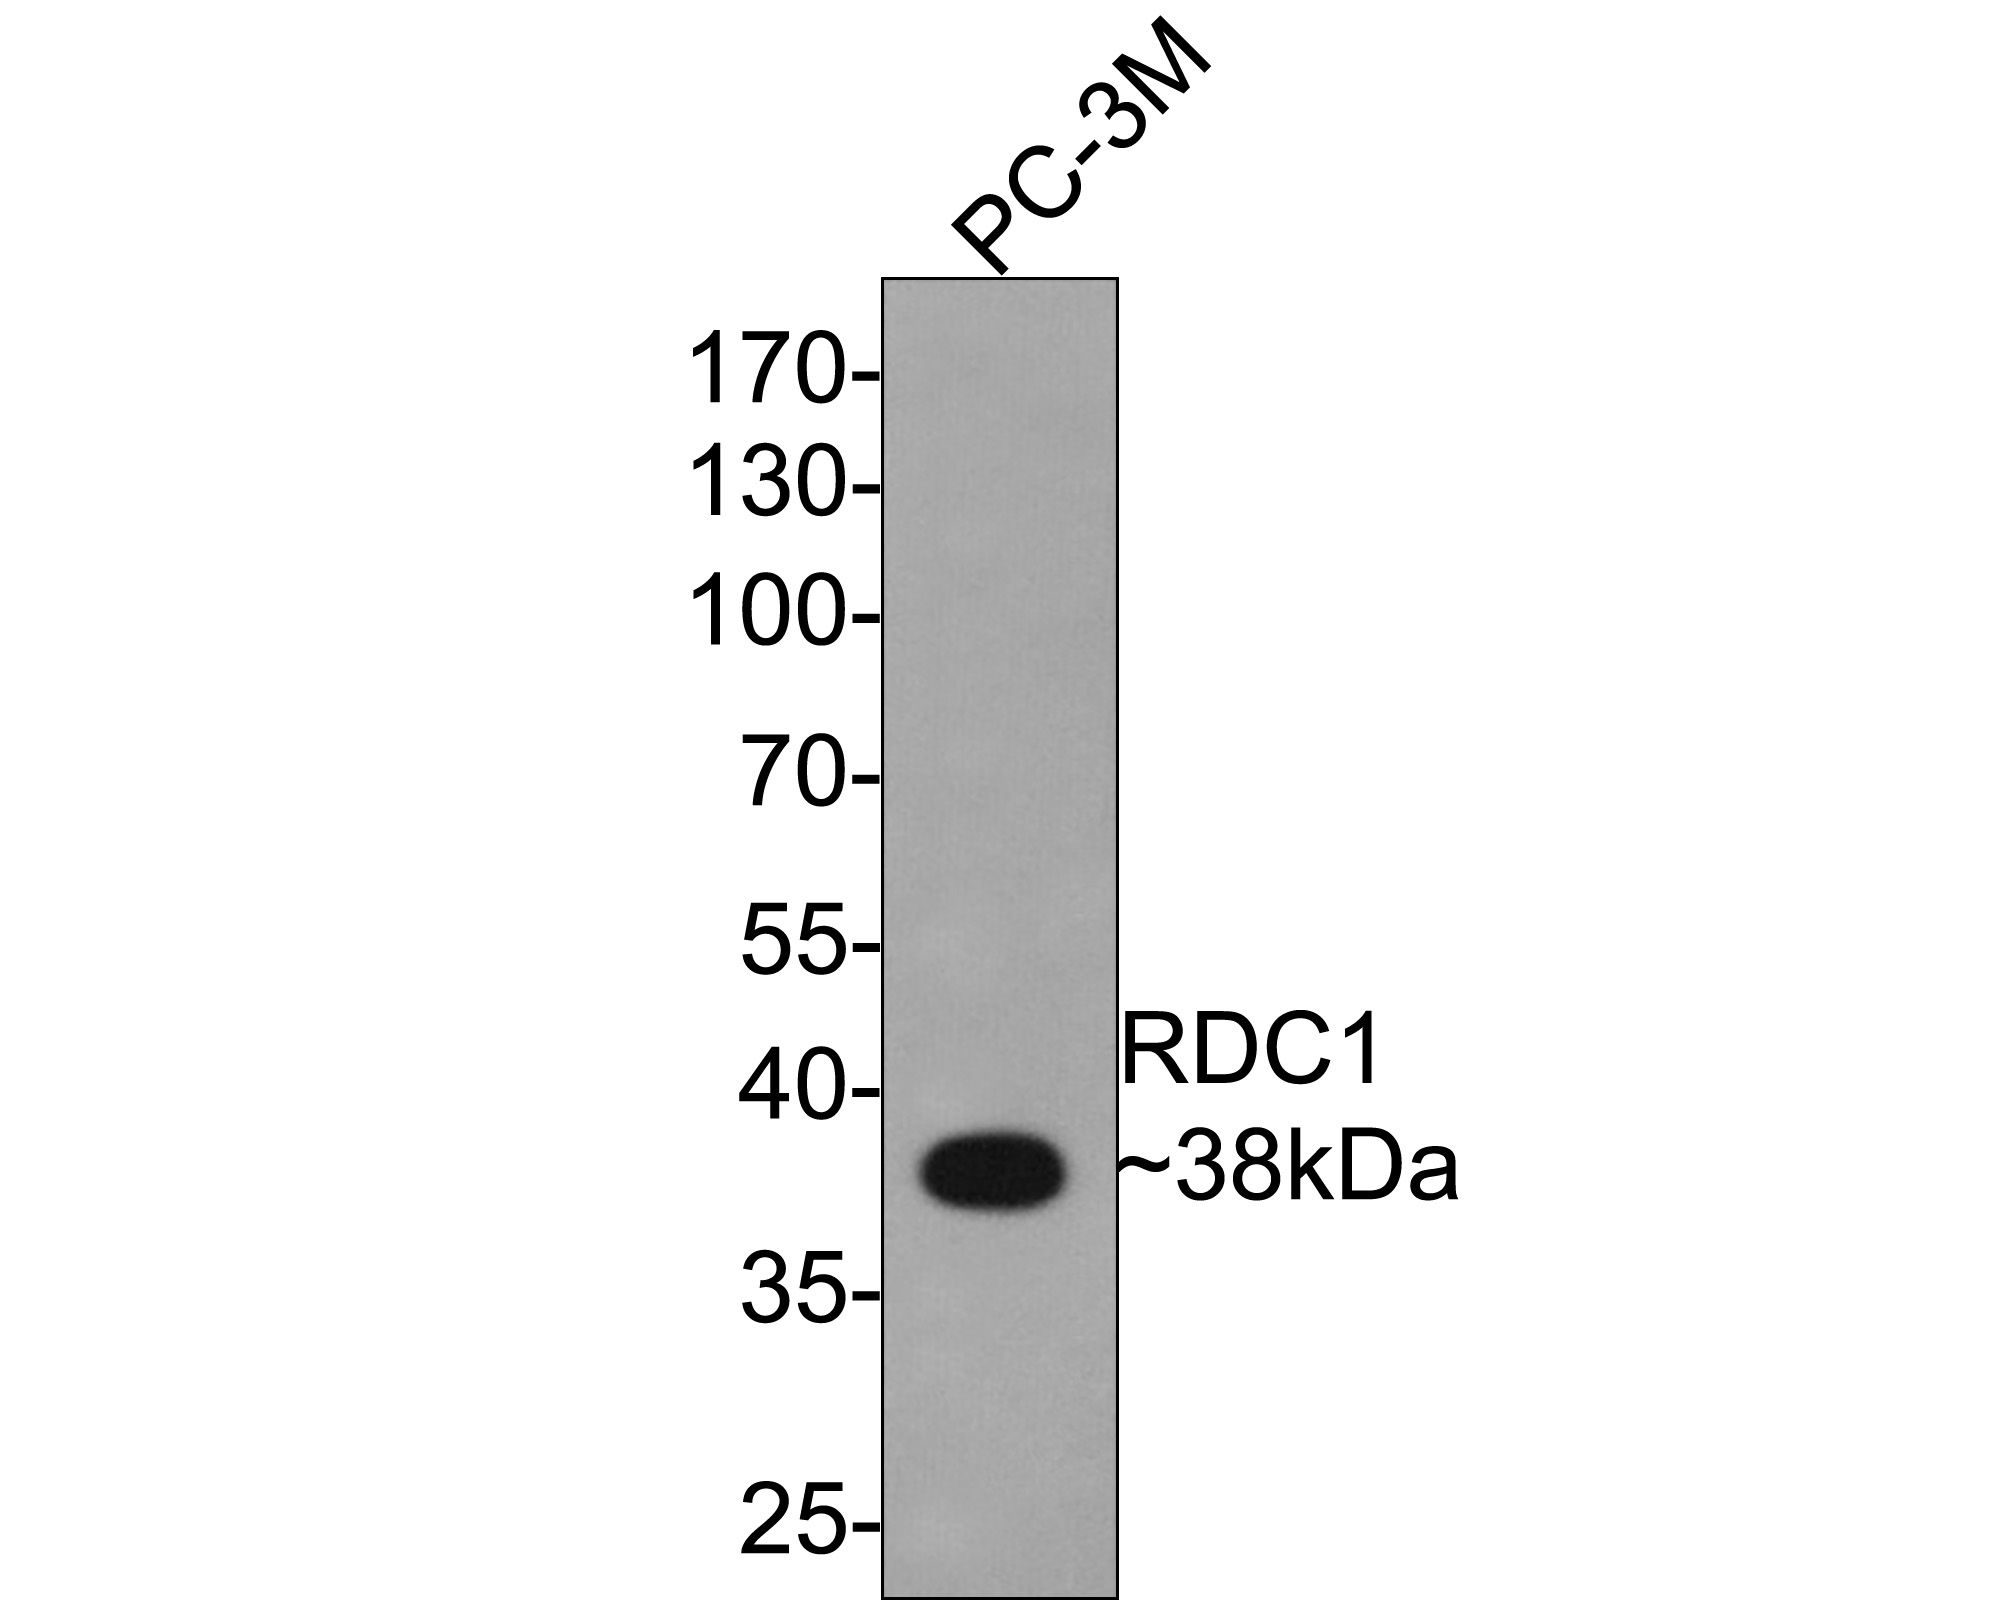 Western blot analysis of GPCR RDC1 on PC-3M cells lysates using anti-GPCR RDC1 antibody at 1/1,000 dilution.